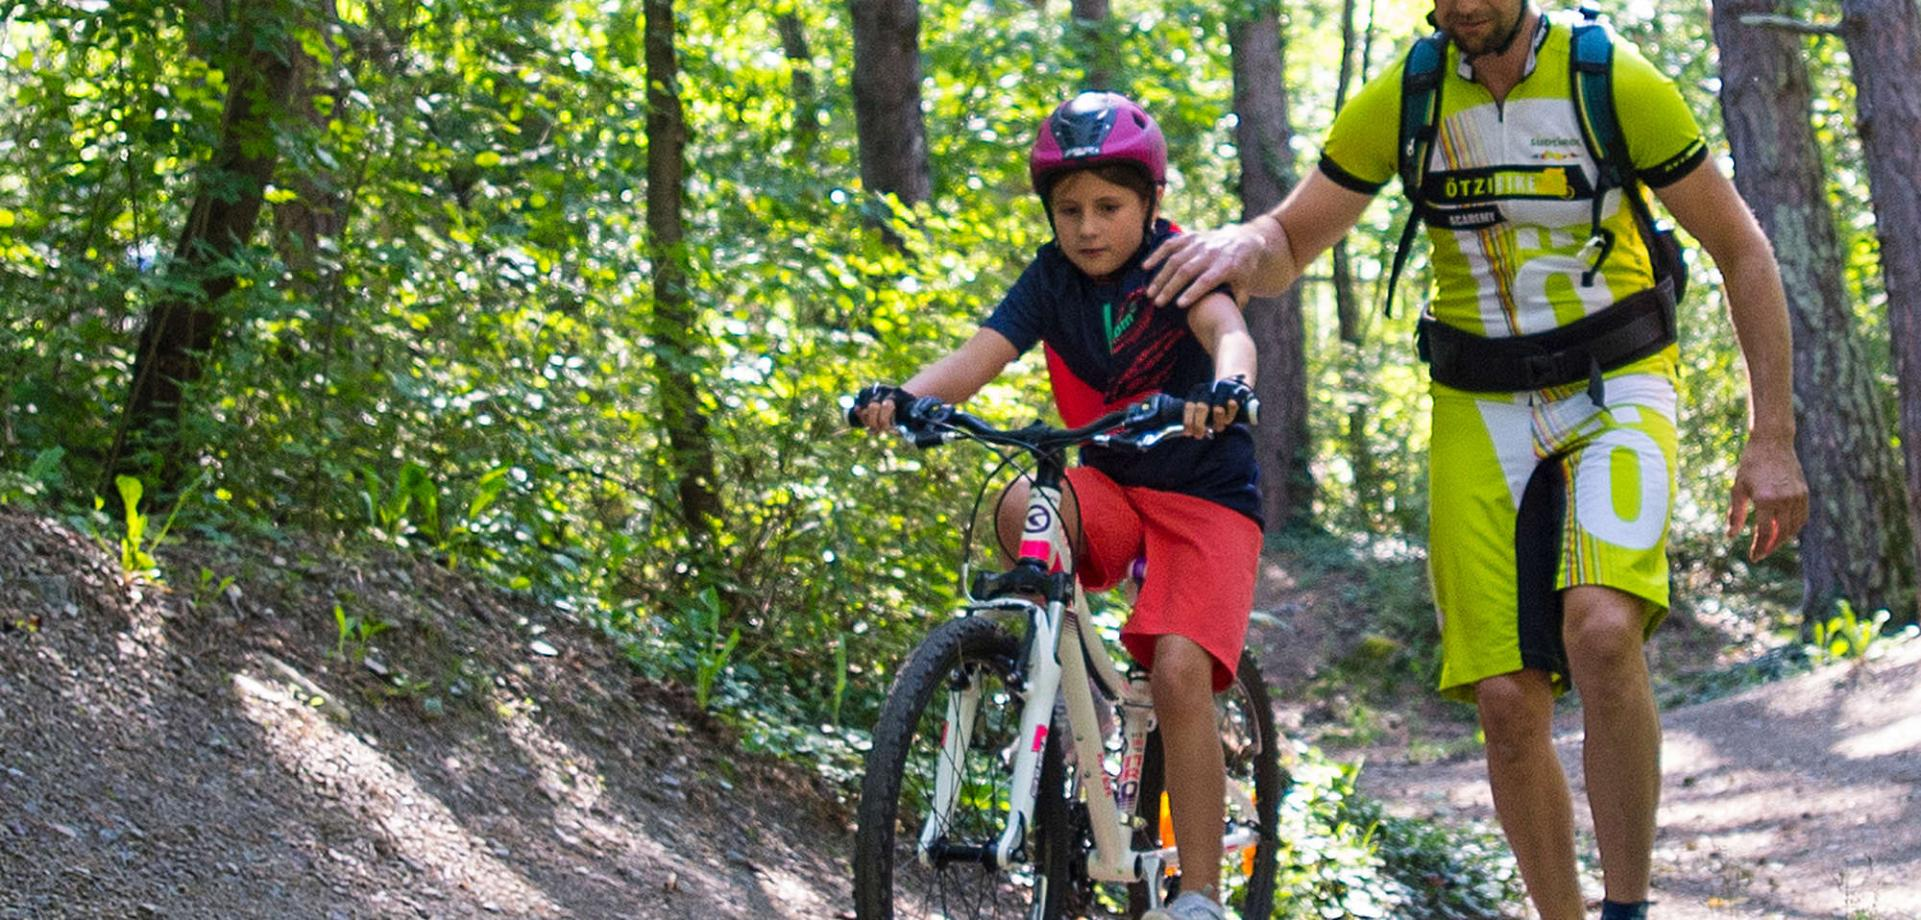 Ötzi Bike Kids Camp